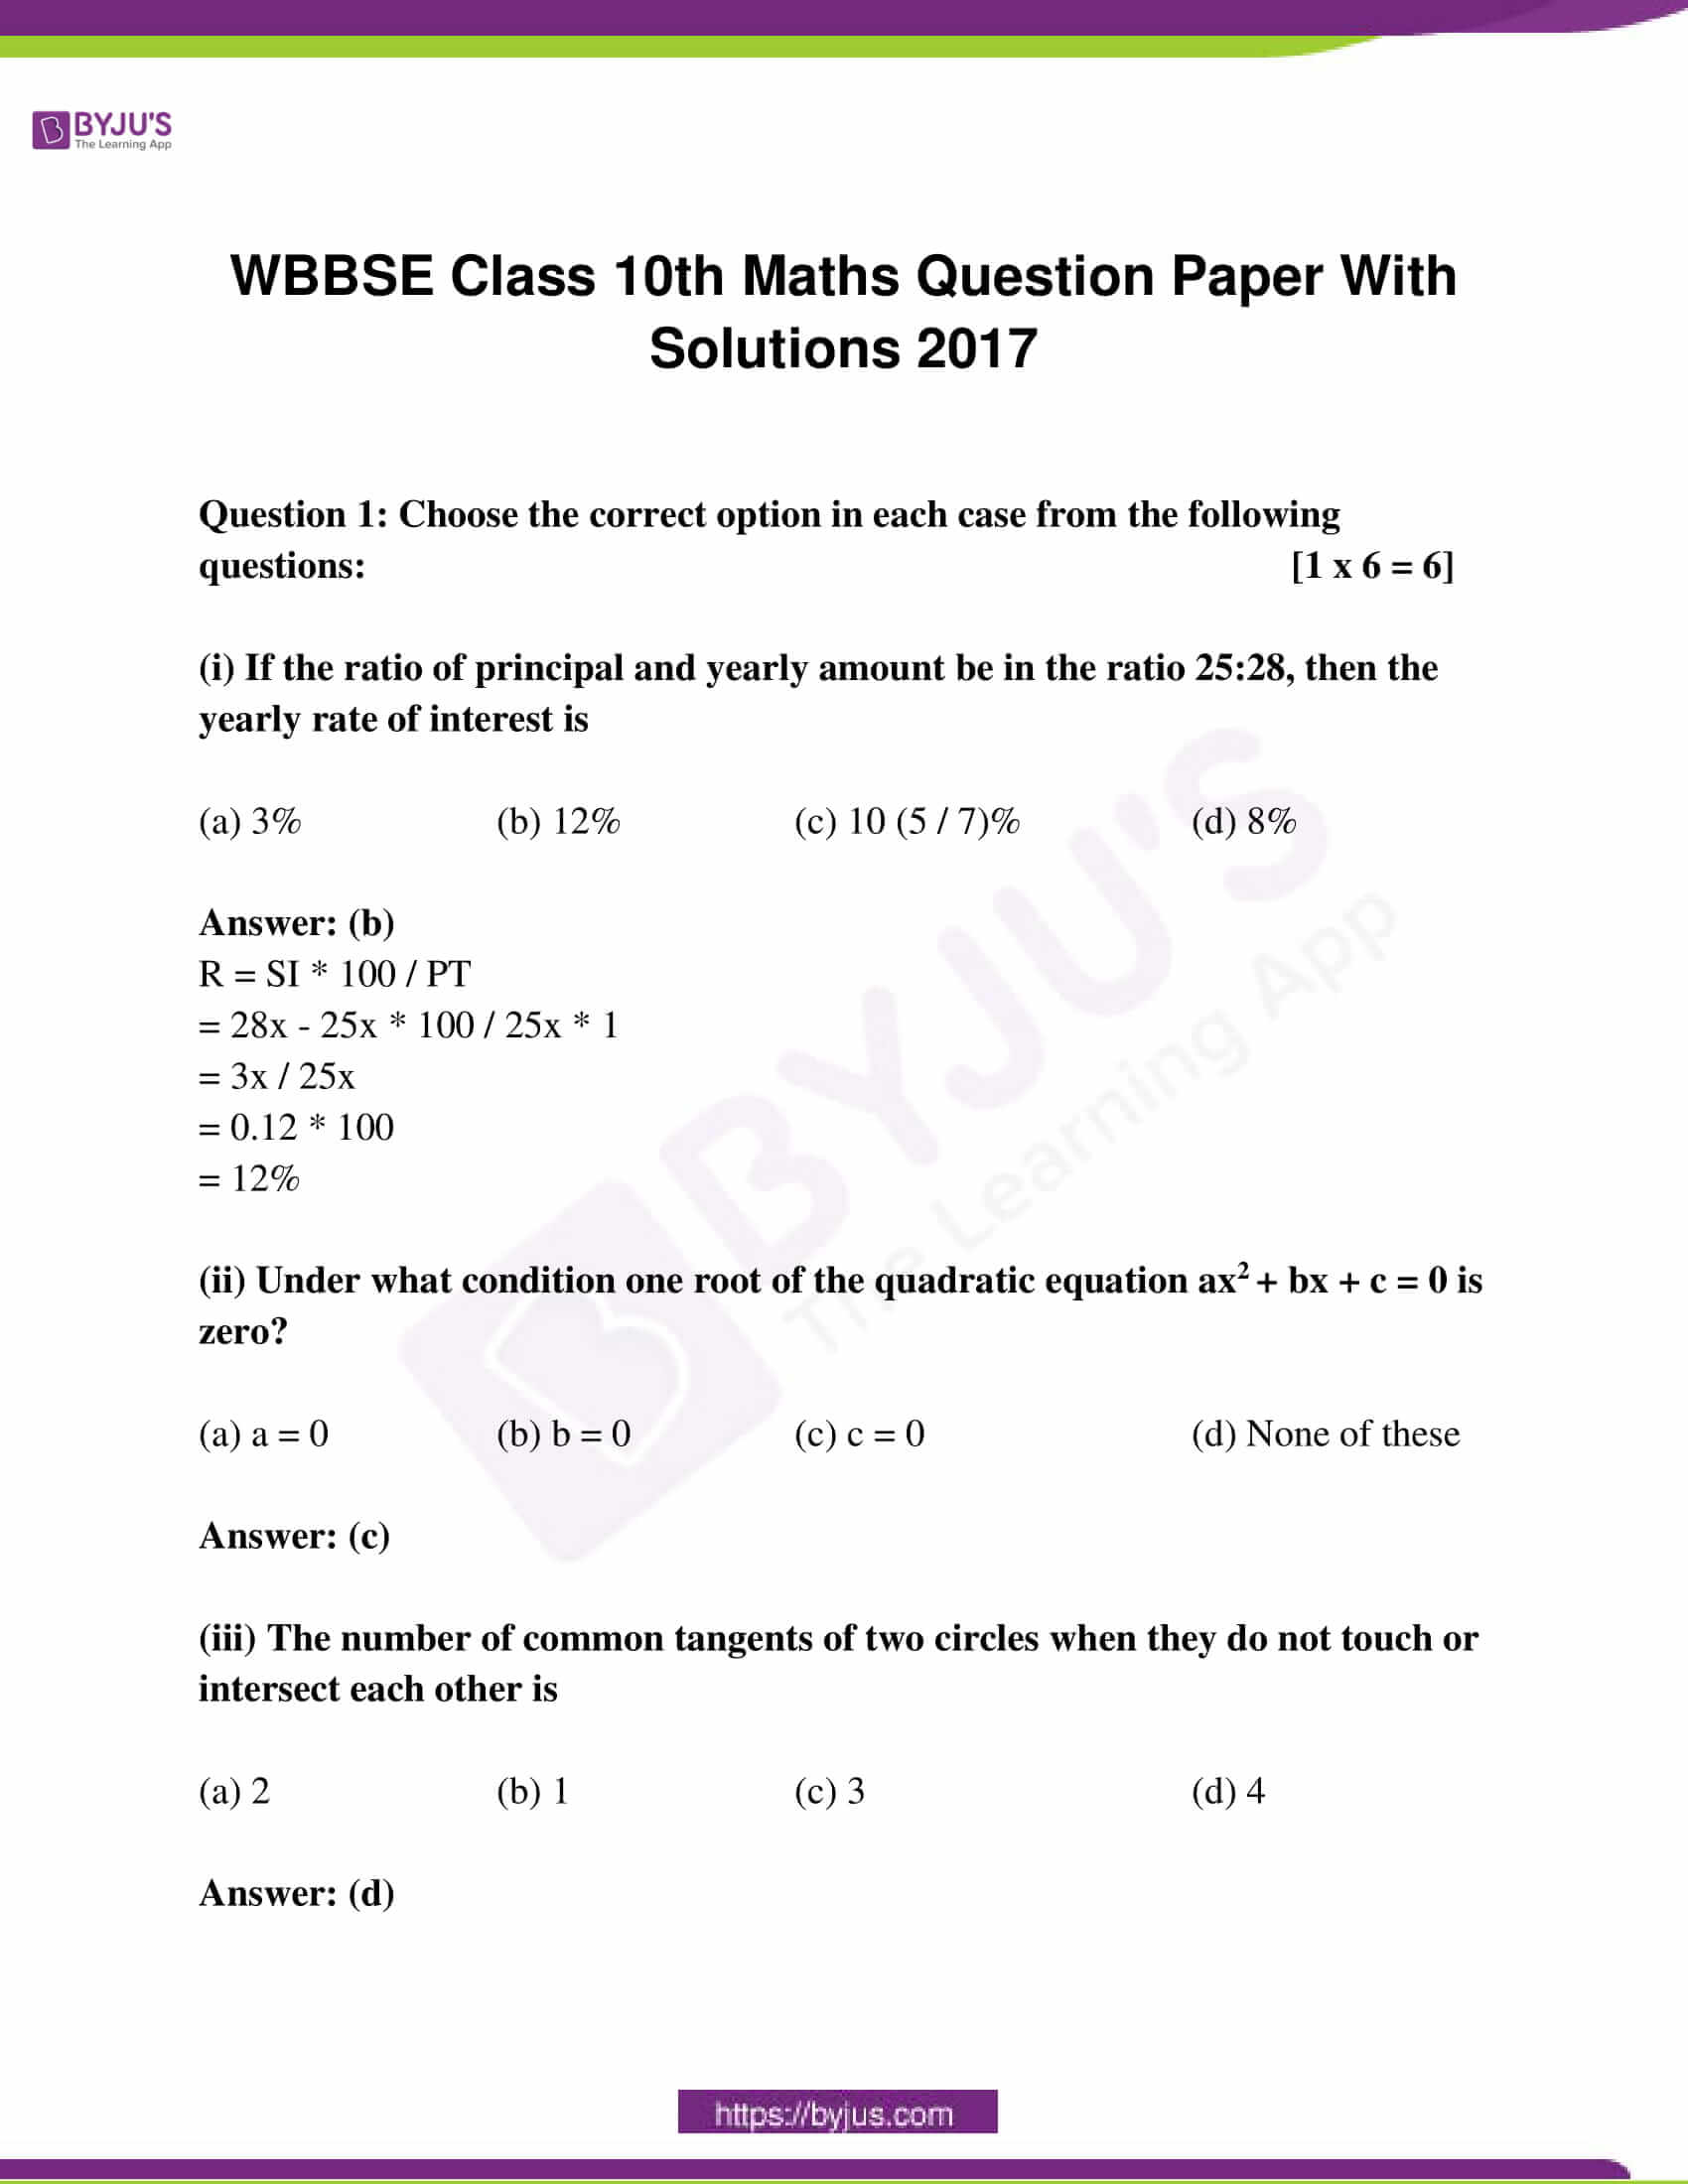 west bengal class 10 exam question paper solutions march 2017 01